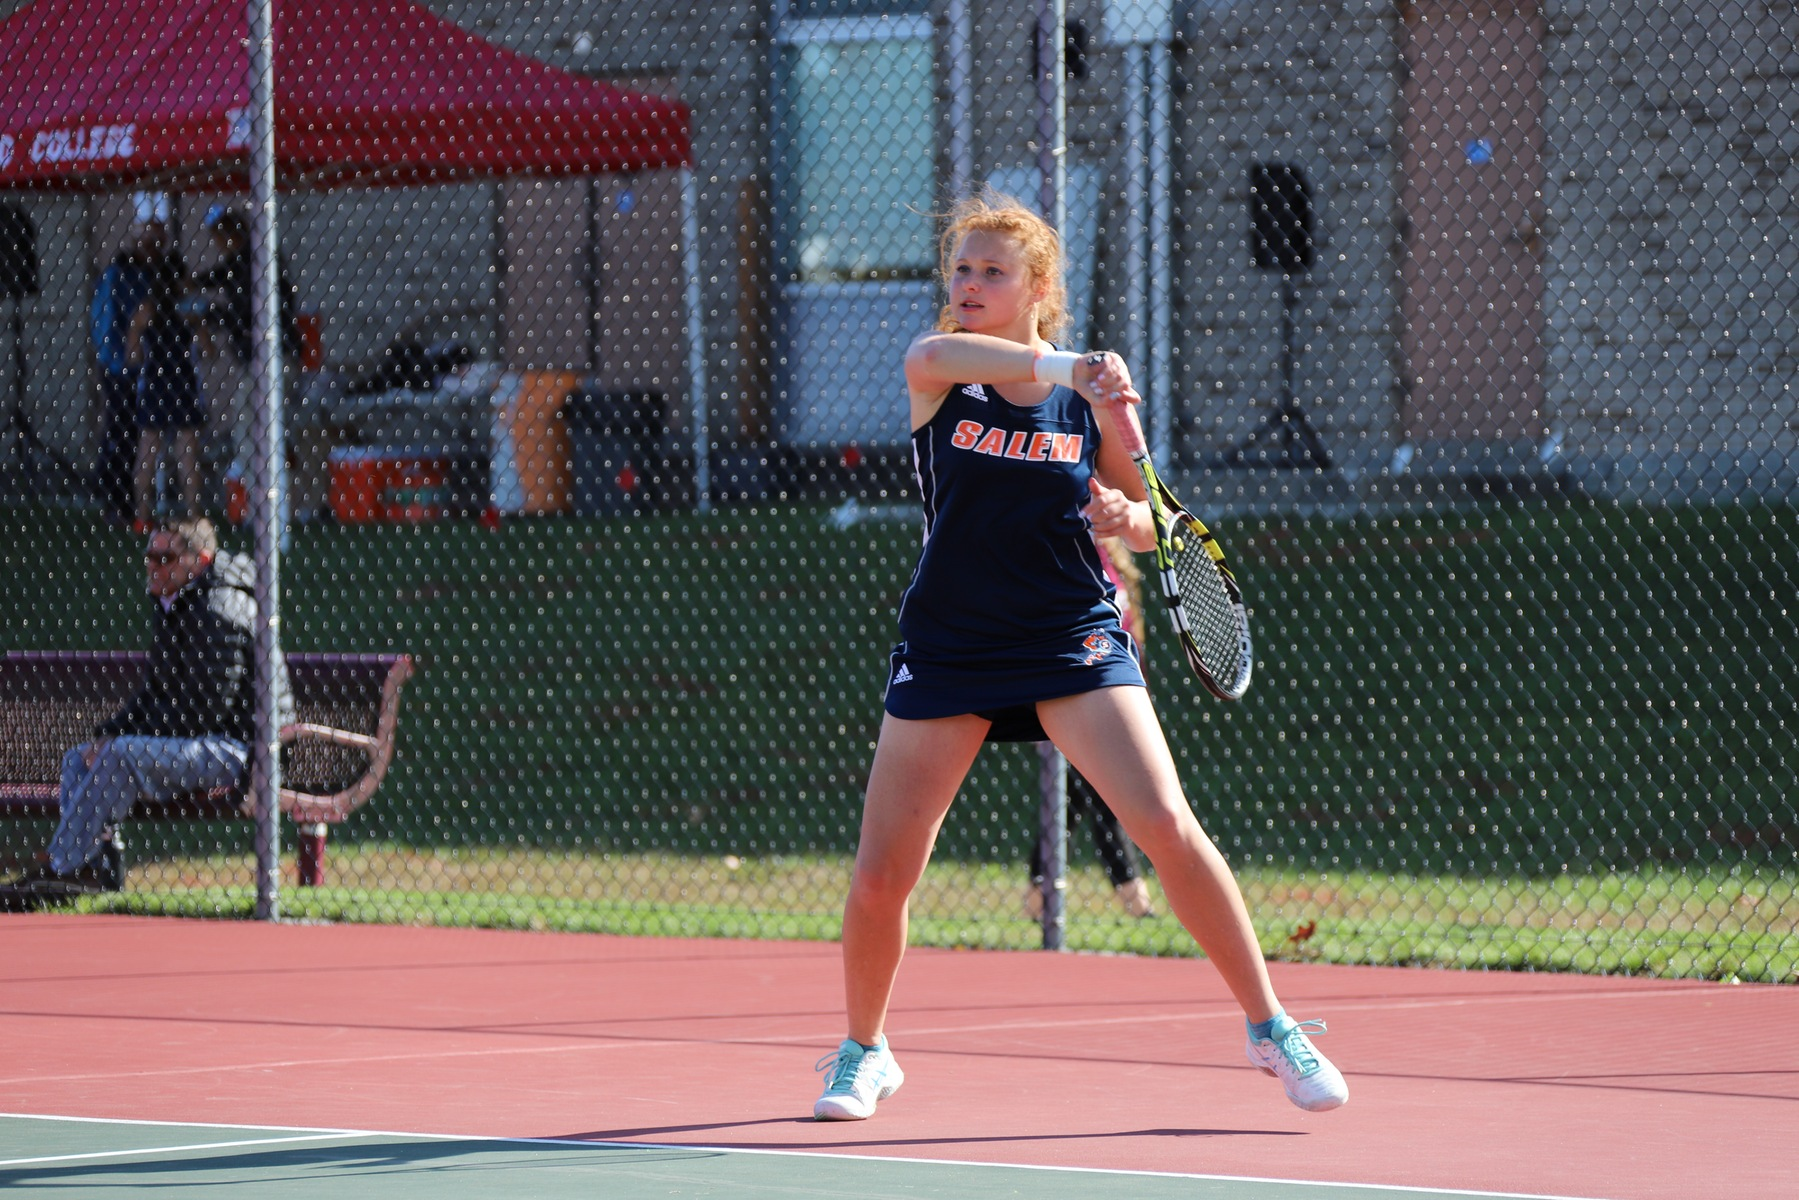 Salem State Posts 9-0 Win Over Curry